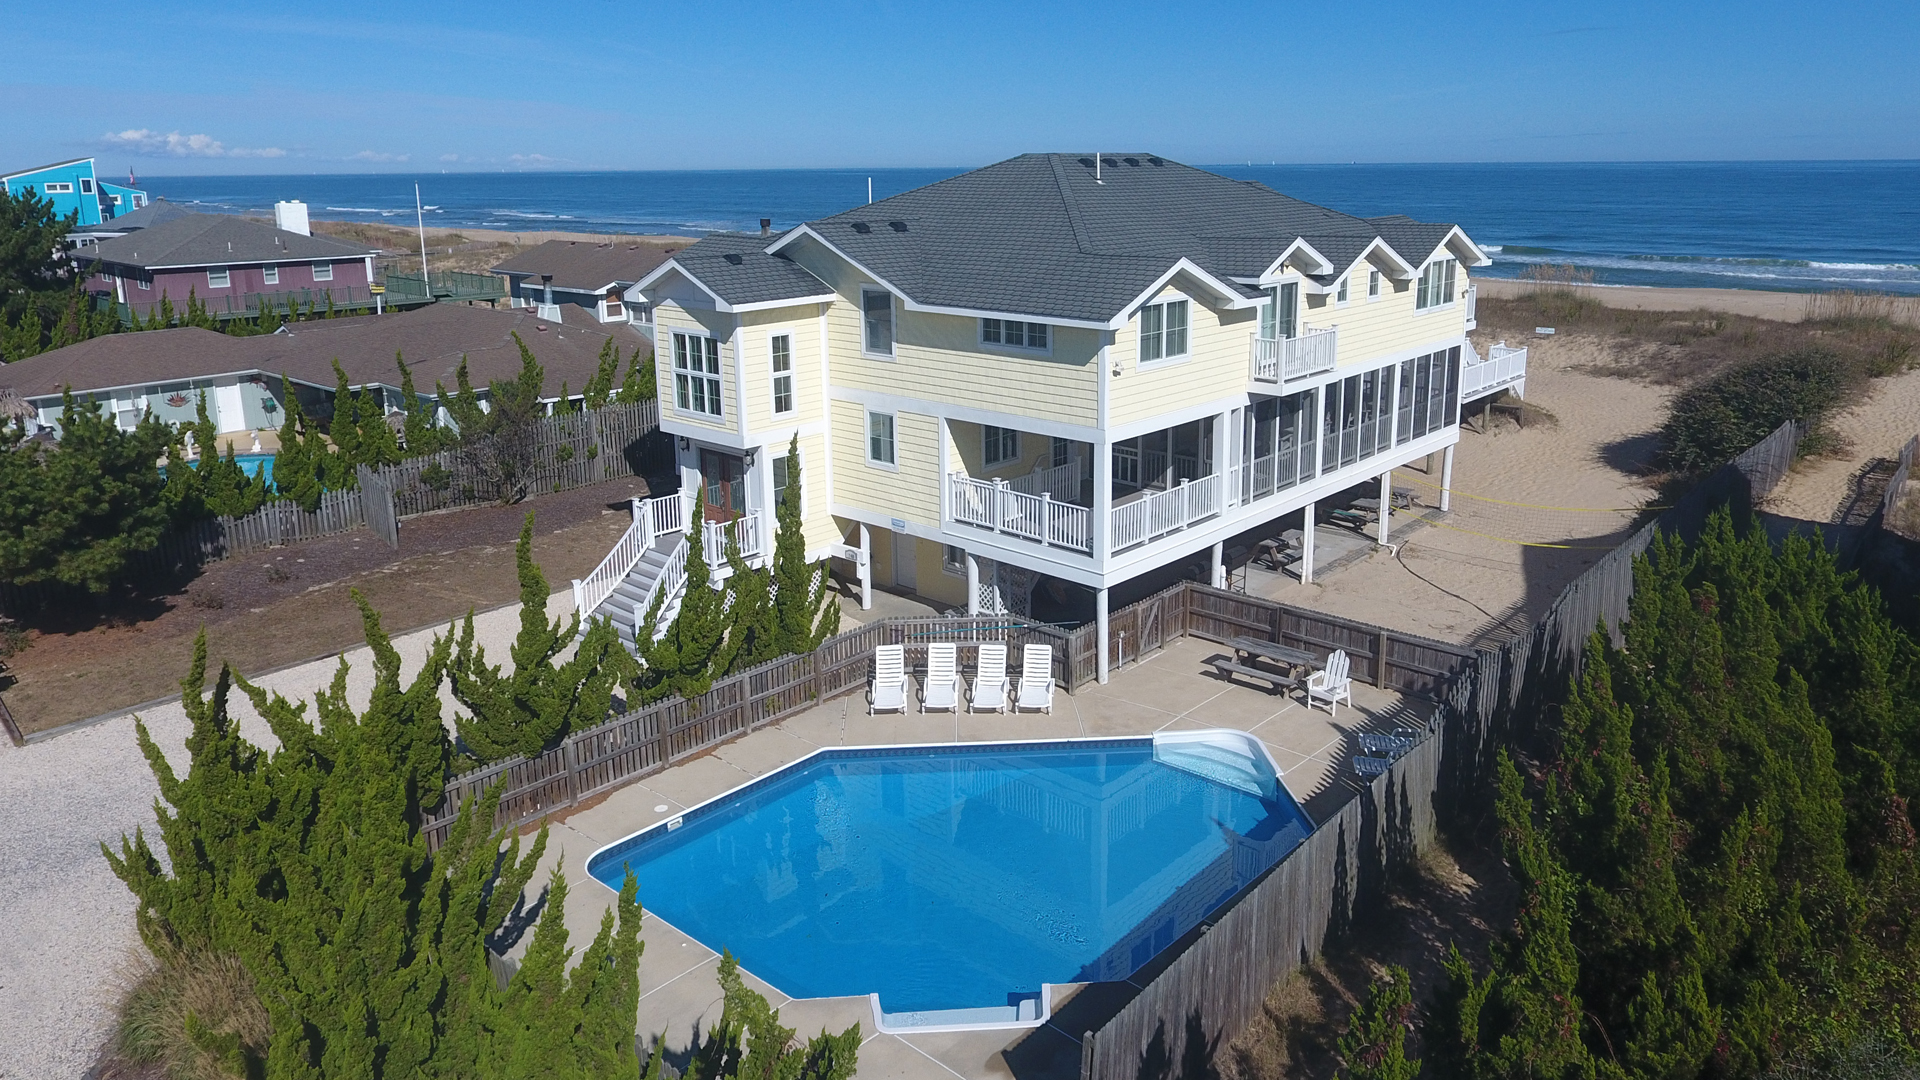 Seafarer - 11 Bedroom Sandbridge Beach Rental | Sandbridge ...